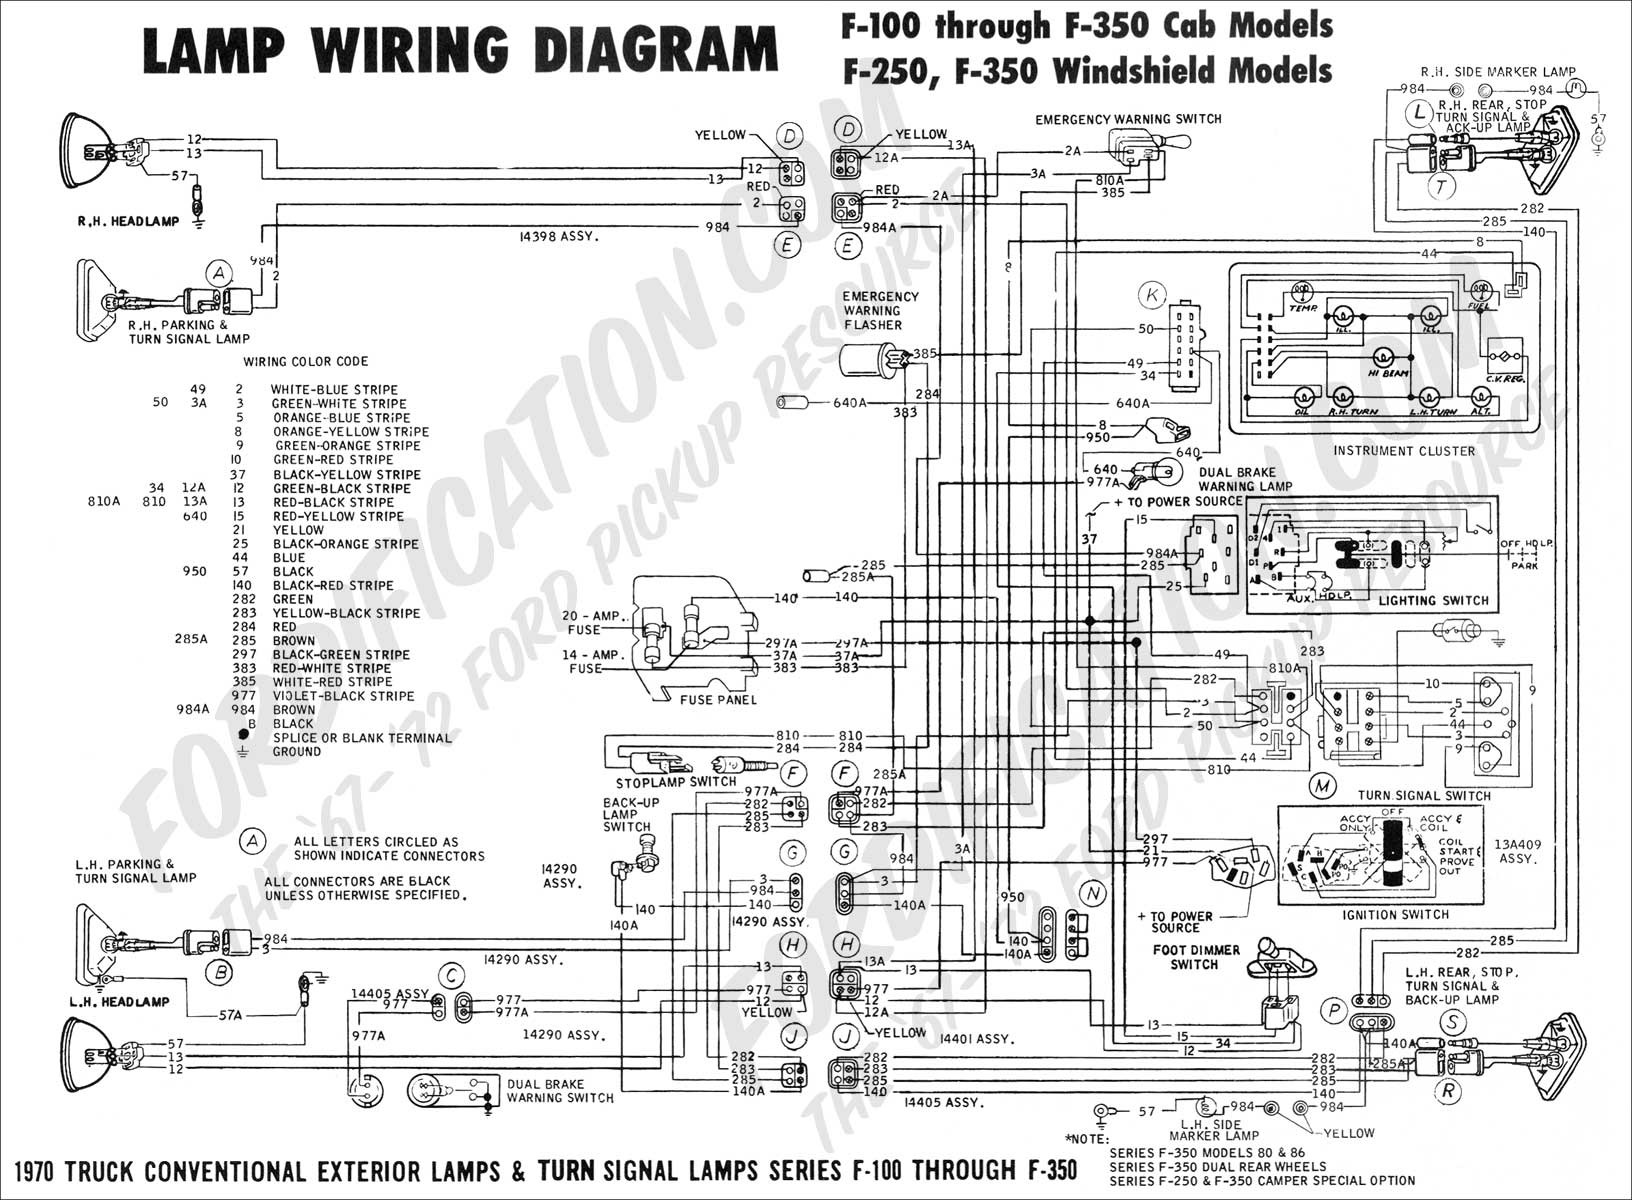 2001 ford escort engine diagram 1997 ford f 250 wiring diagrams also rh detoxicrecenze com wiring diagram for 2001 ford f350 Ford E 350 Wiring Diagrams